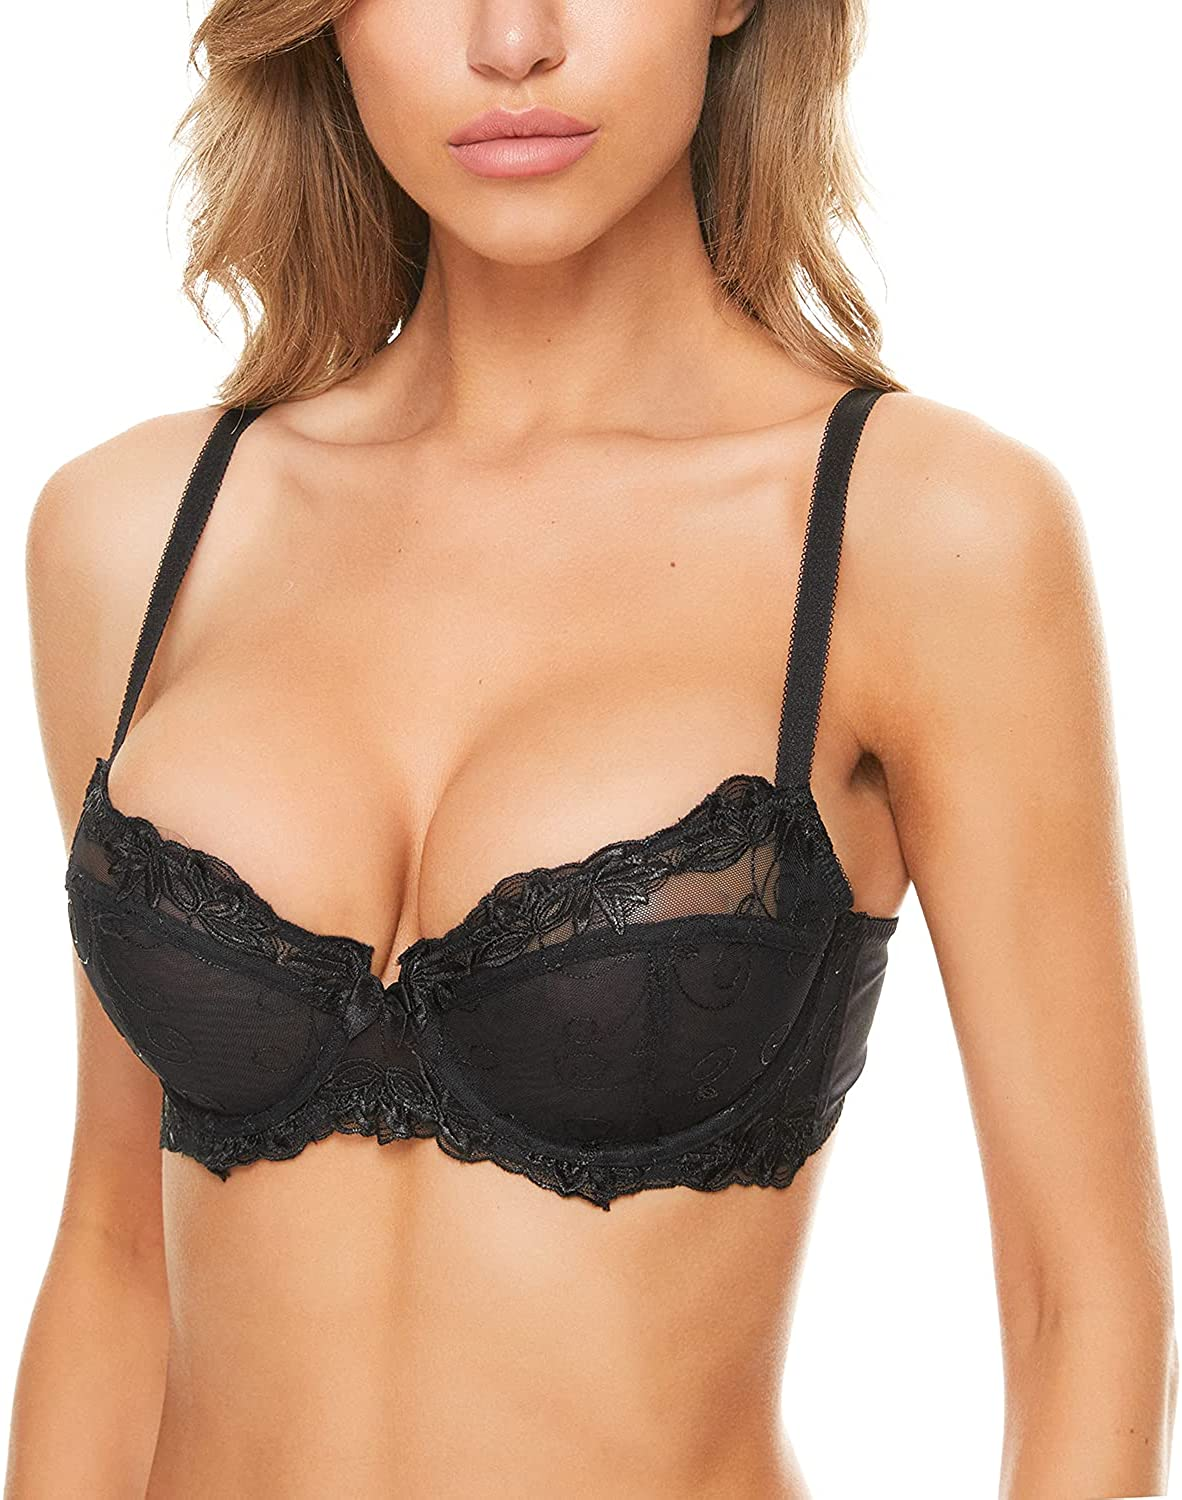 Wingslove Women's Sexy Lace Bra Non Padded Embroidered Unlined Underwire Balconette Bra Plus Size